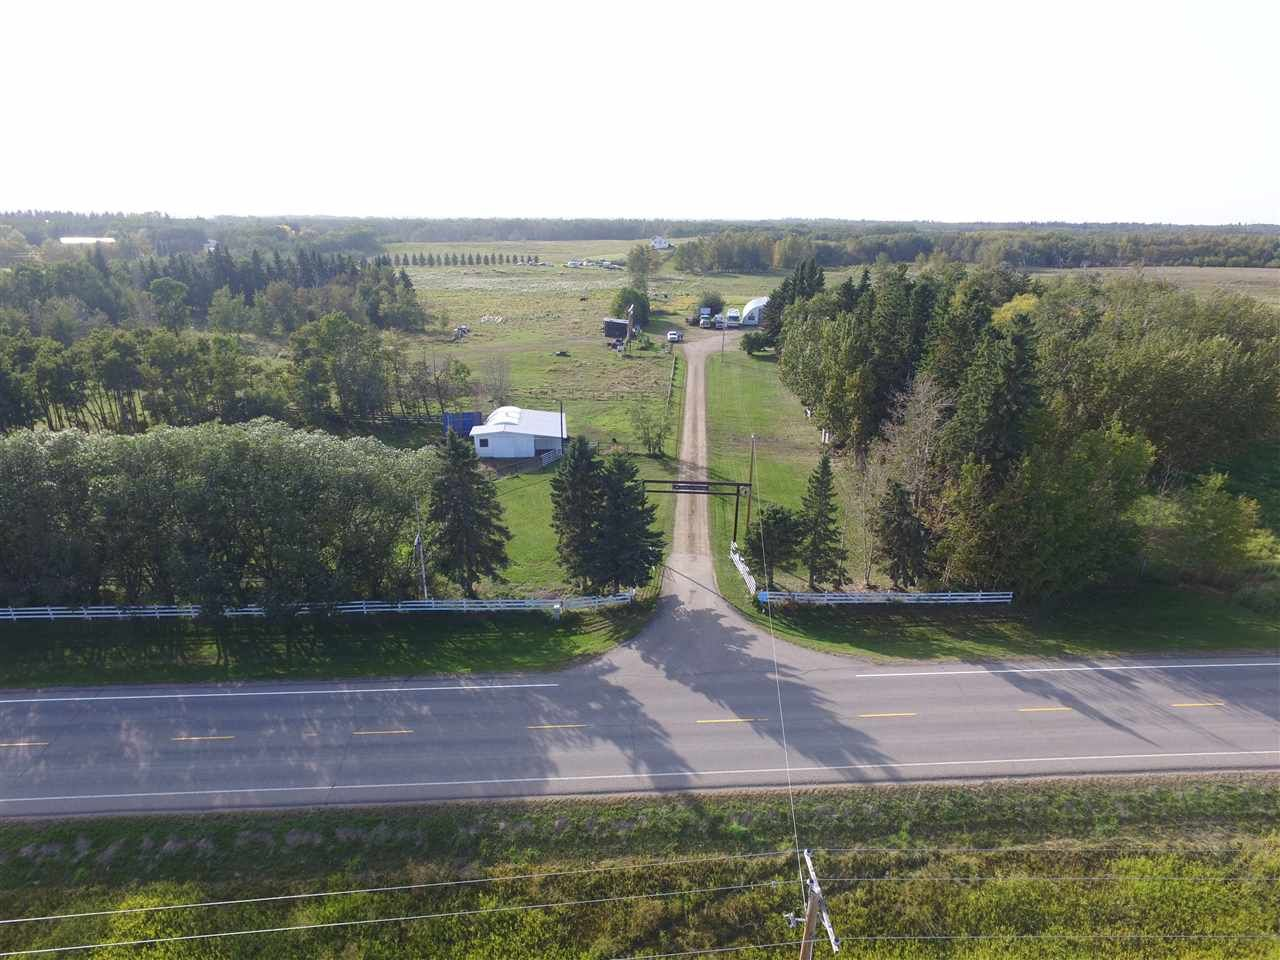 Photo 21: Photos: 472050A Hwy 814: Rural Wetaskiwin County House for sale : MLS®# E4213442